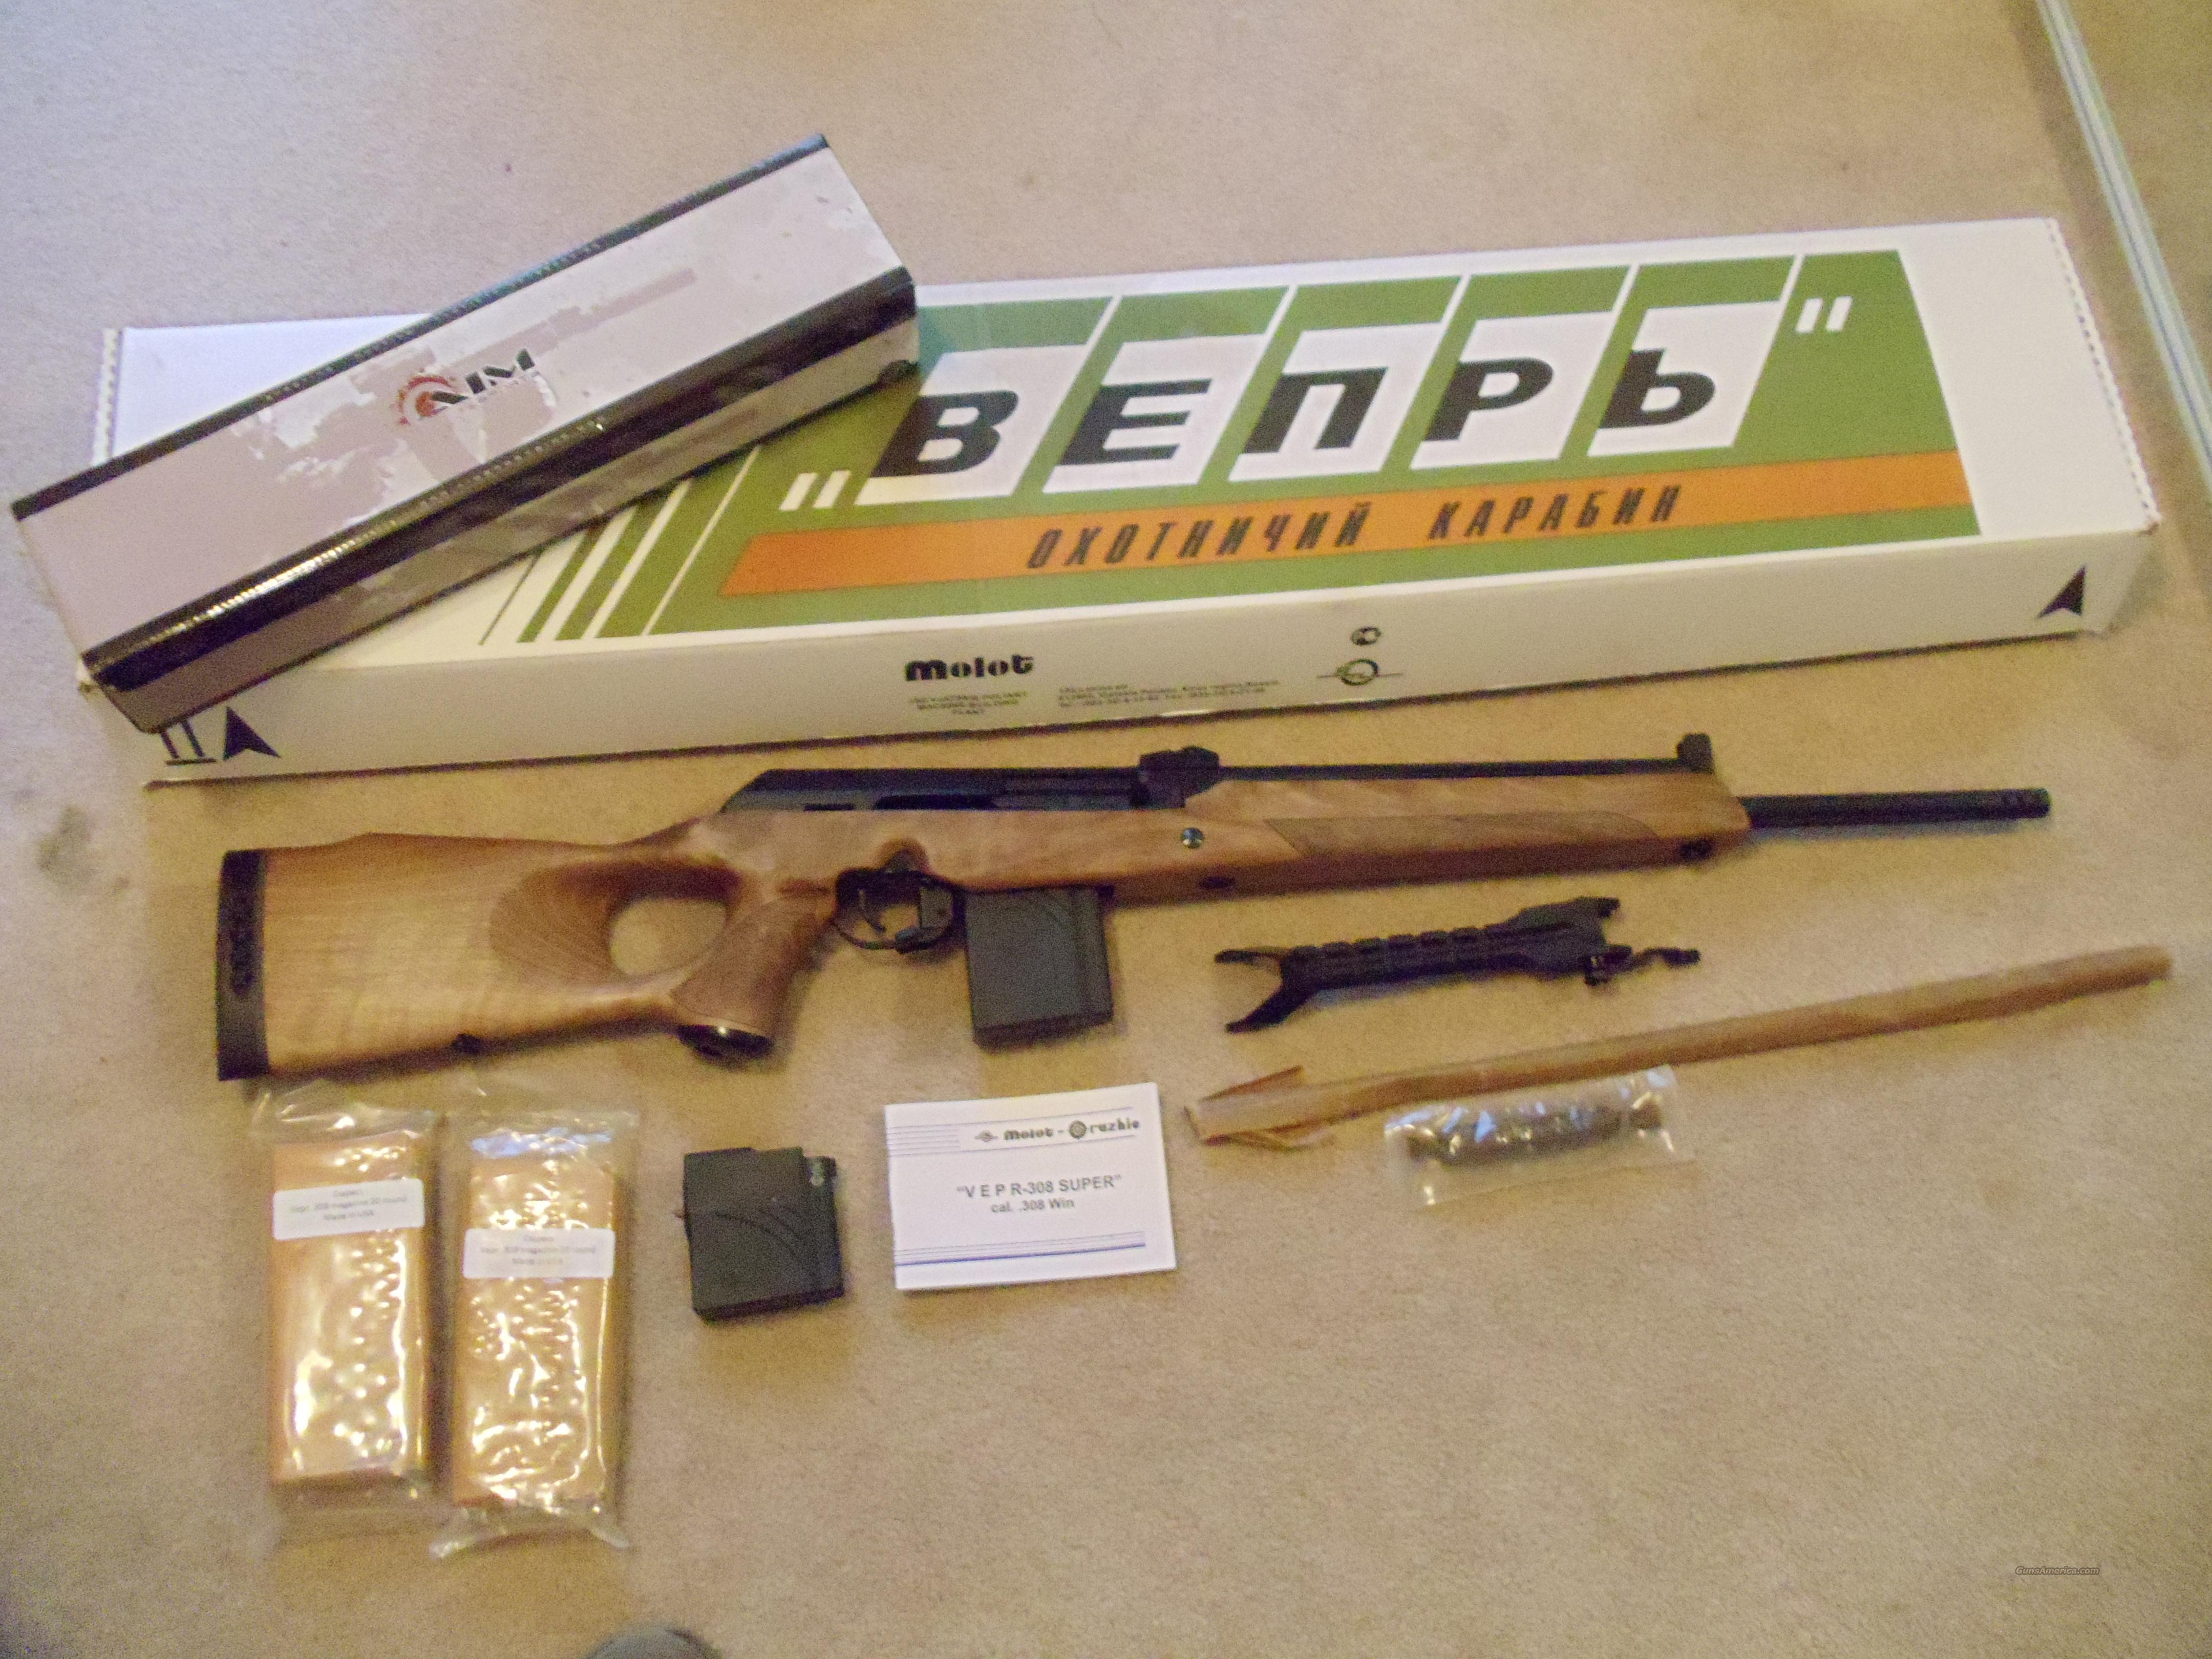 super vepr 308 with